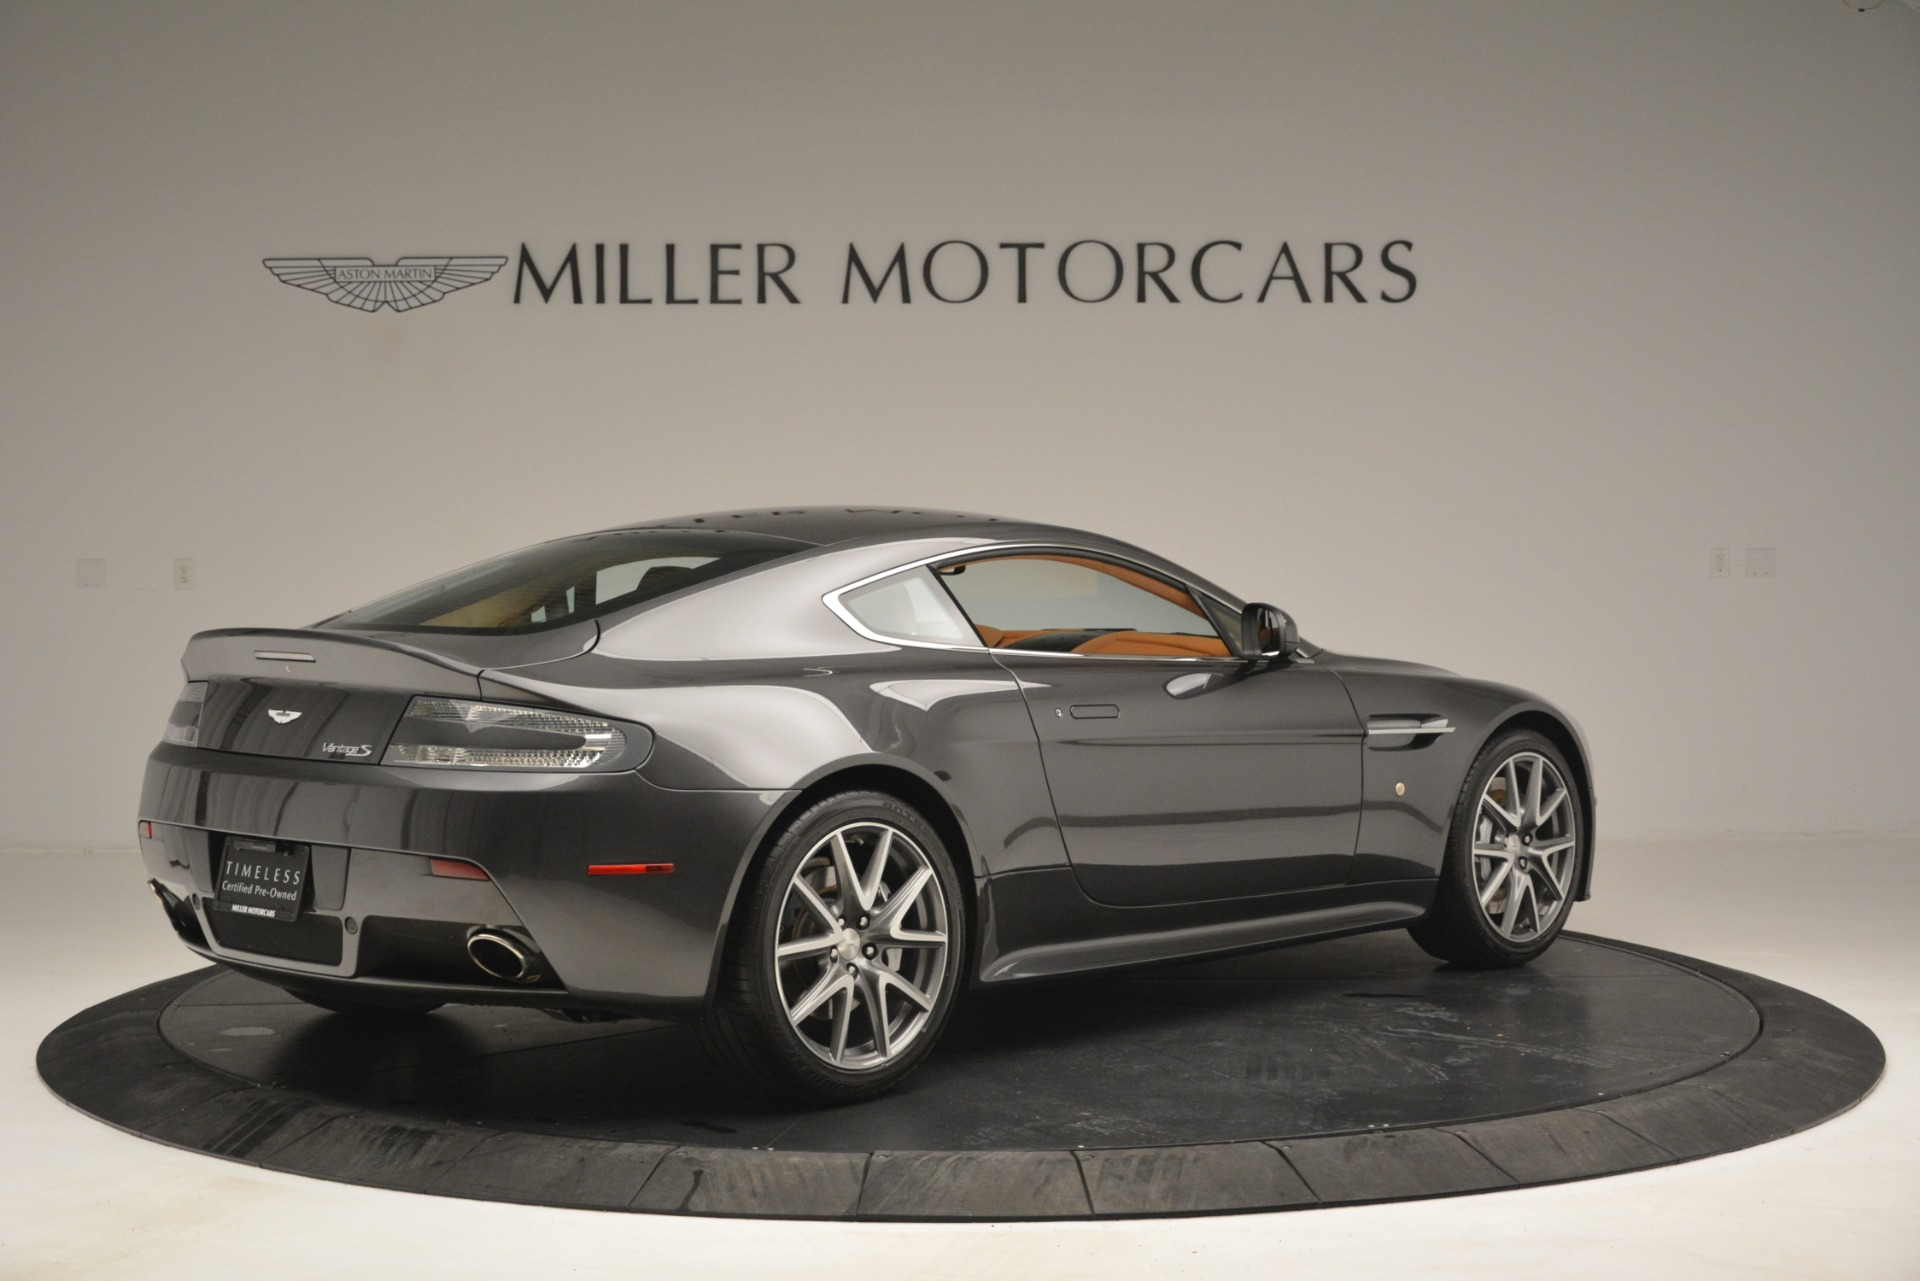 Used 2012 Aston Martin V8 Vantage S Coupe For Sale In Westport, CT 2951_p8